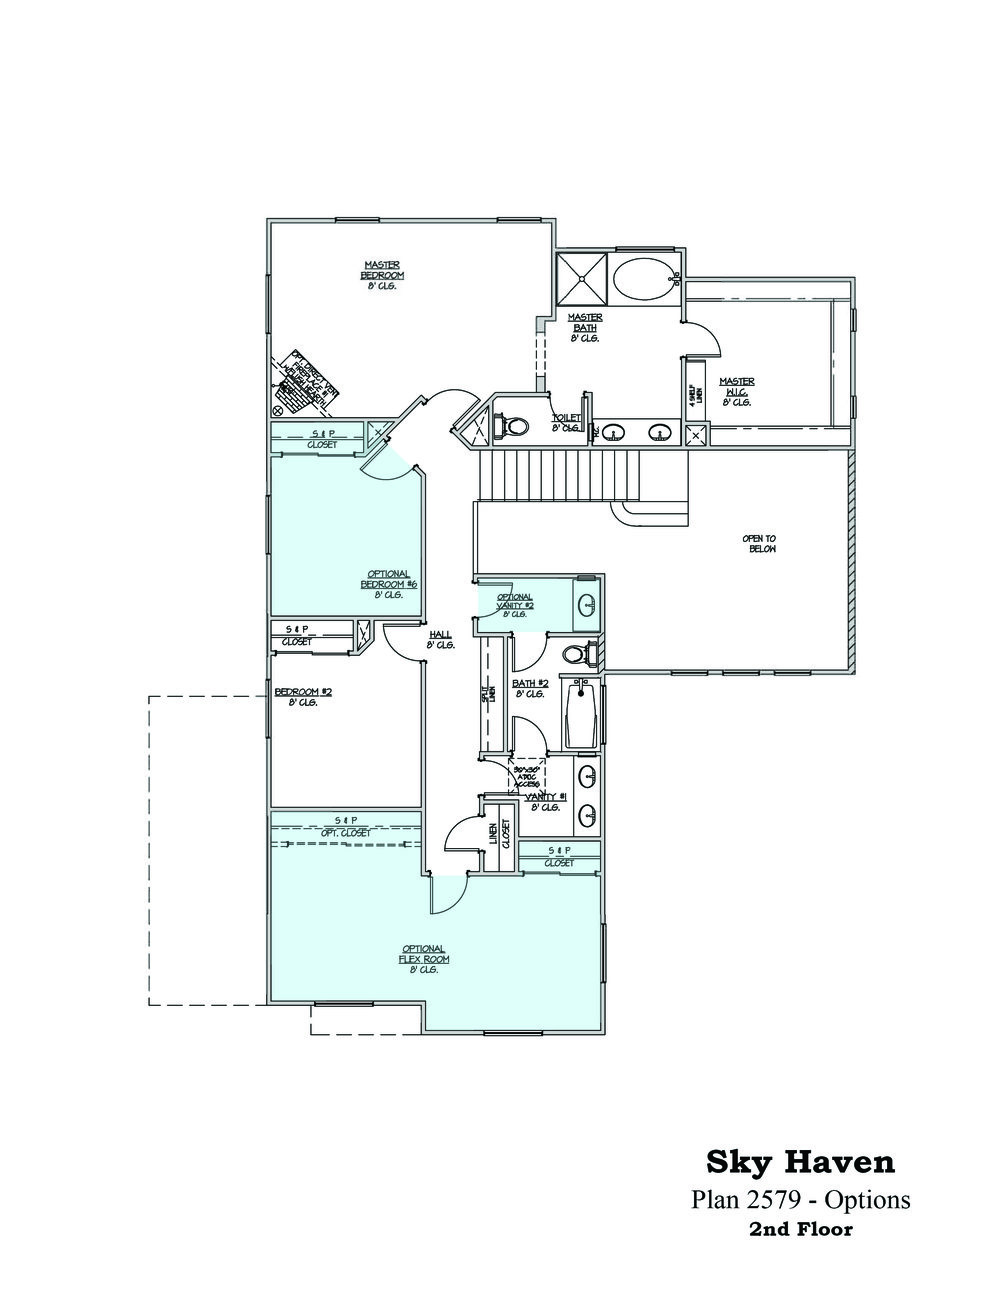 Floorplan_2579_Options 2nd Floor.jpg